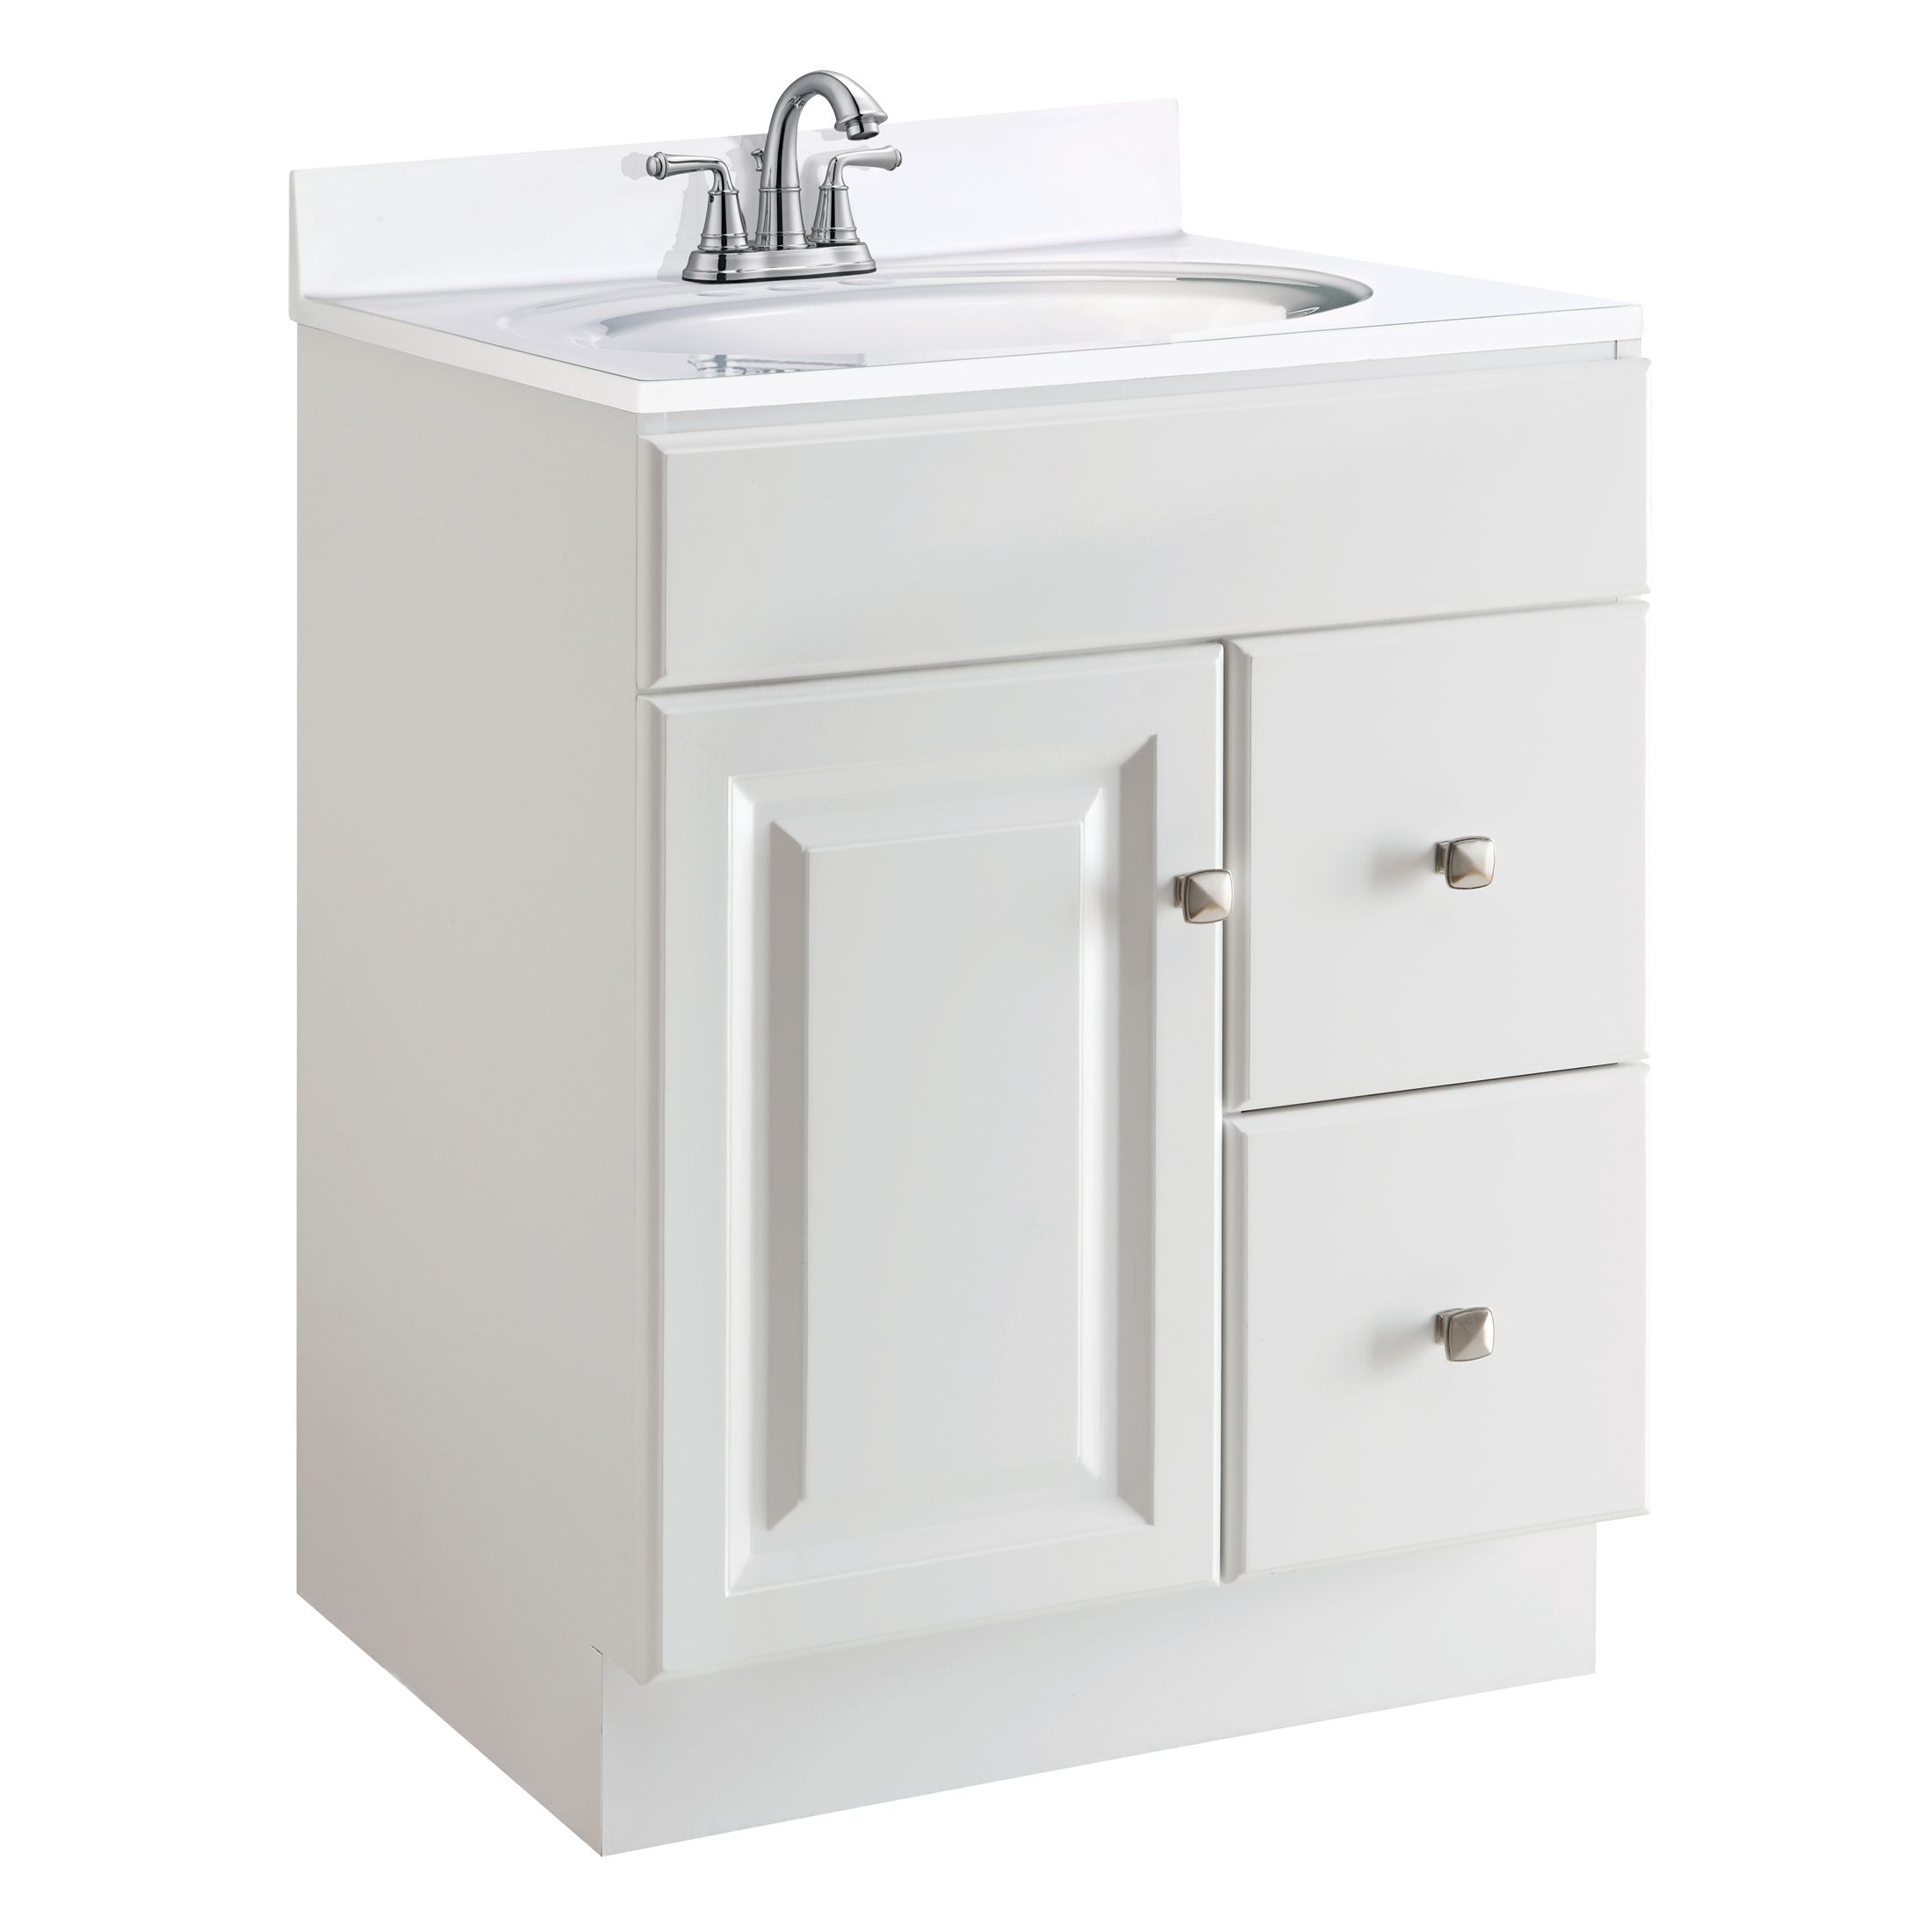 "Wyndham 1-Door 2-Drawers 24"" Vanity, White #545053"